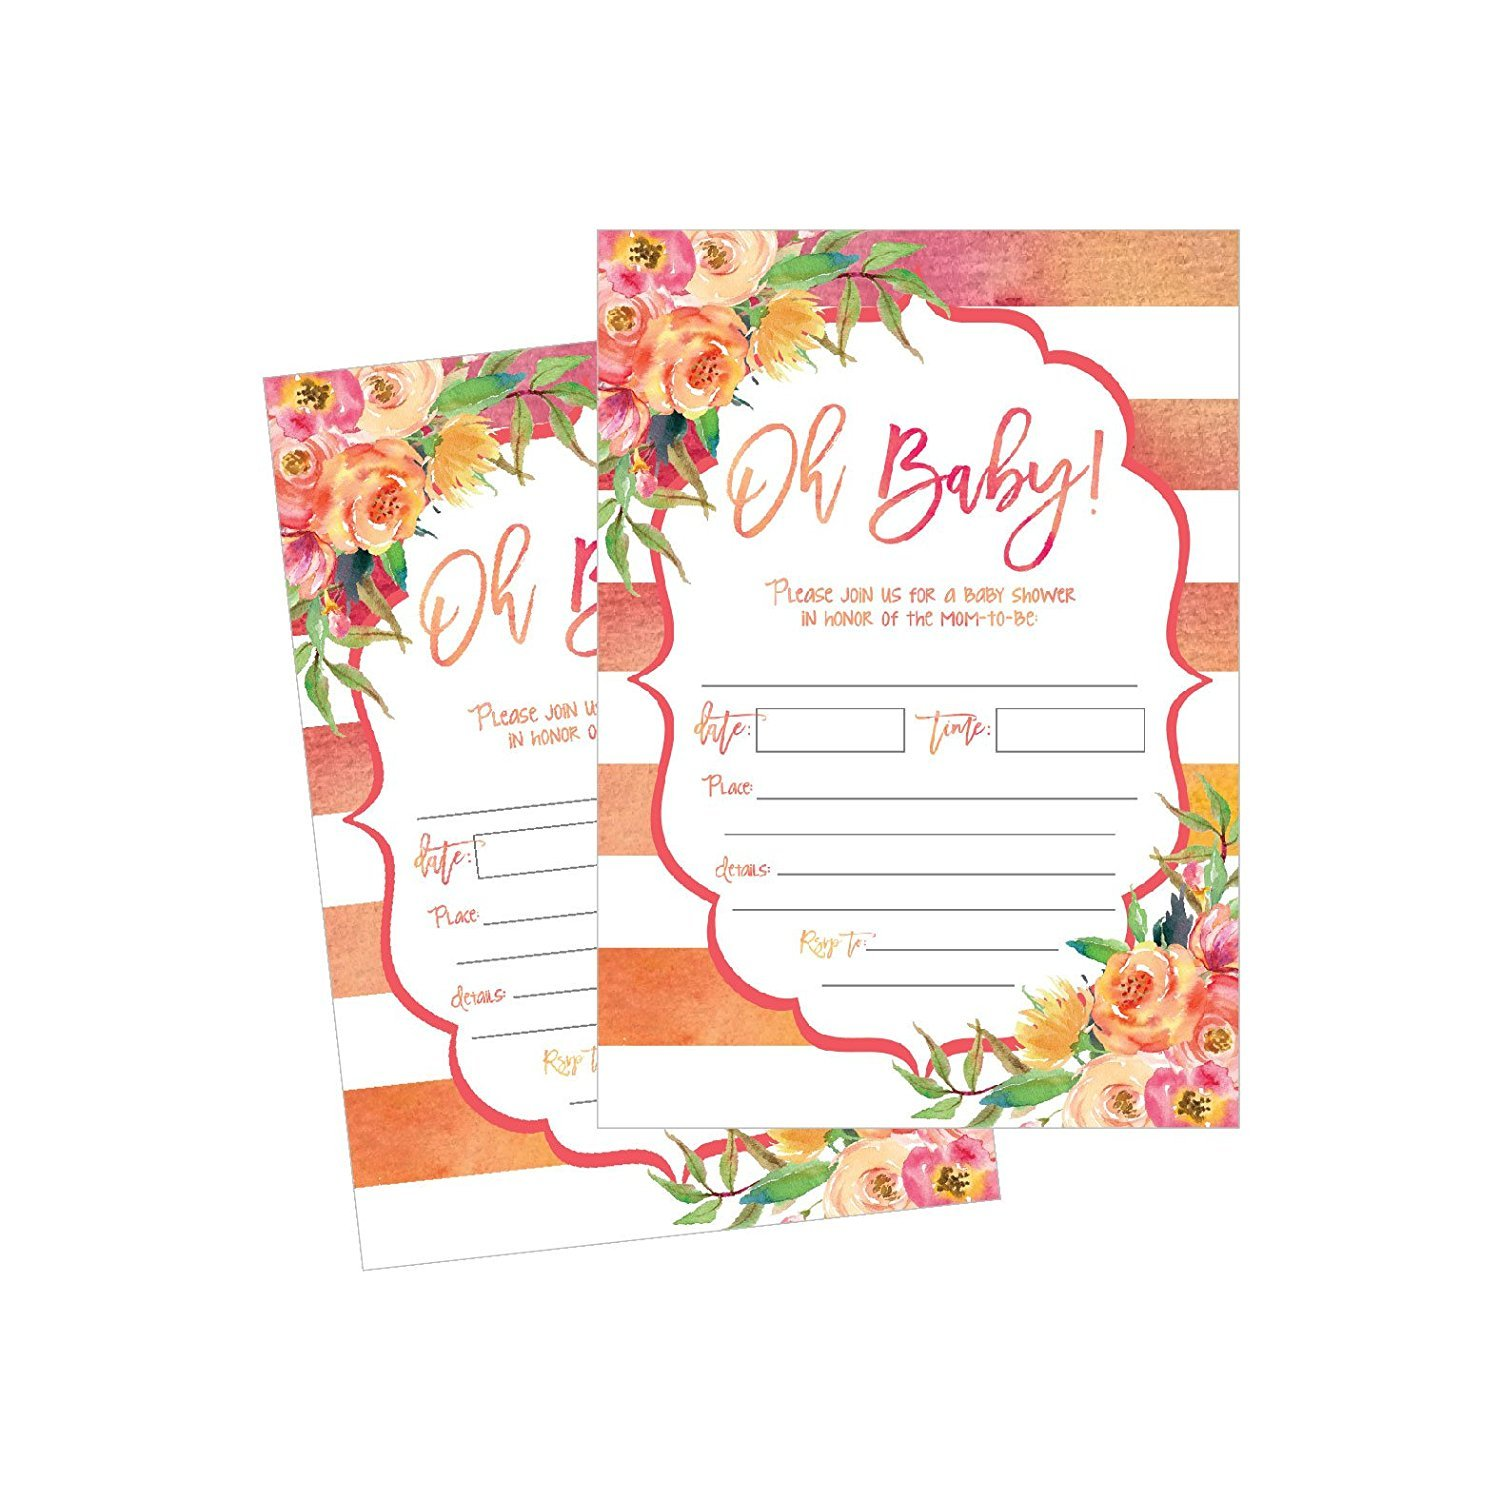 photo about Walmart Printable Invitations named 50 Fill inside of Adorable Boy or girl Shower Invites, Kid Shower Invites Floral, Crimson and Gold, Impartial, Blank Little one Shower Invitations for woman, Boy or girl Invitation